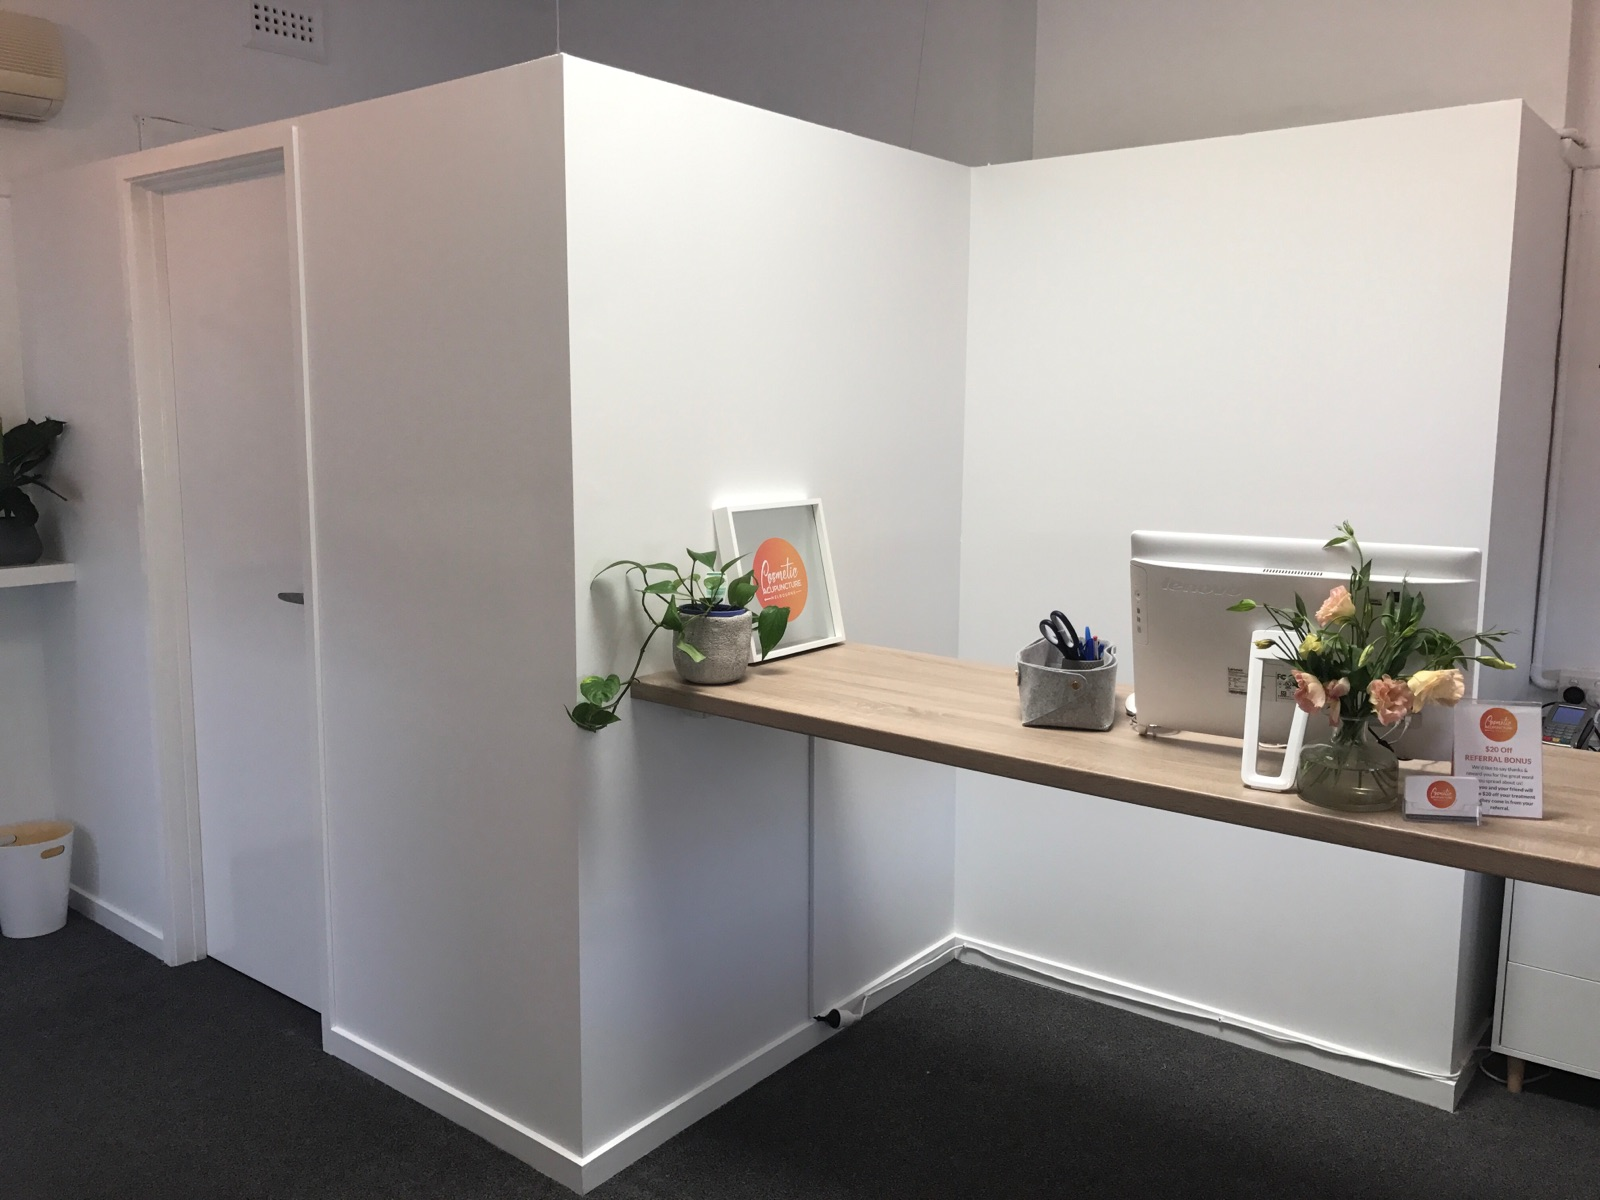 Painting plastering handyman carpentry office fitout melbourne gold coast tweed heads - Services We Offer